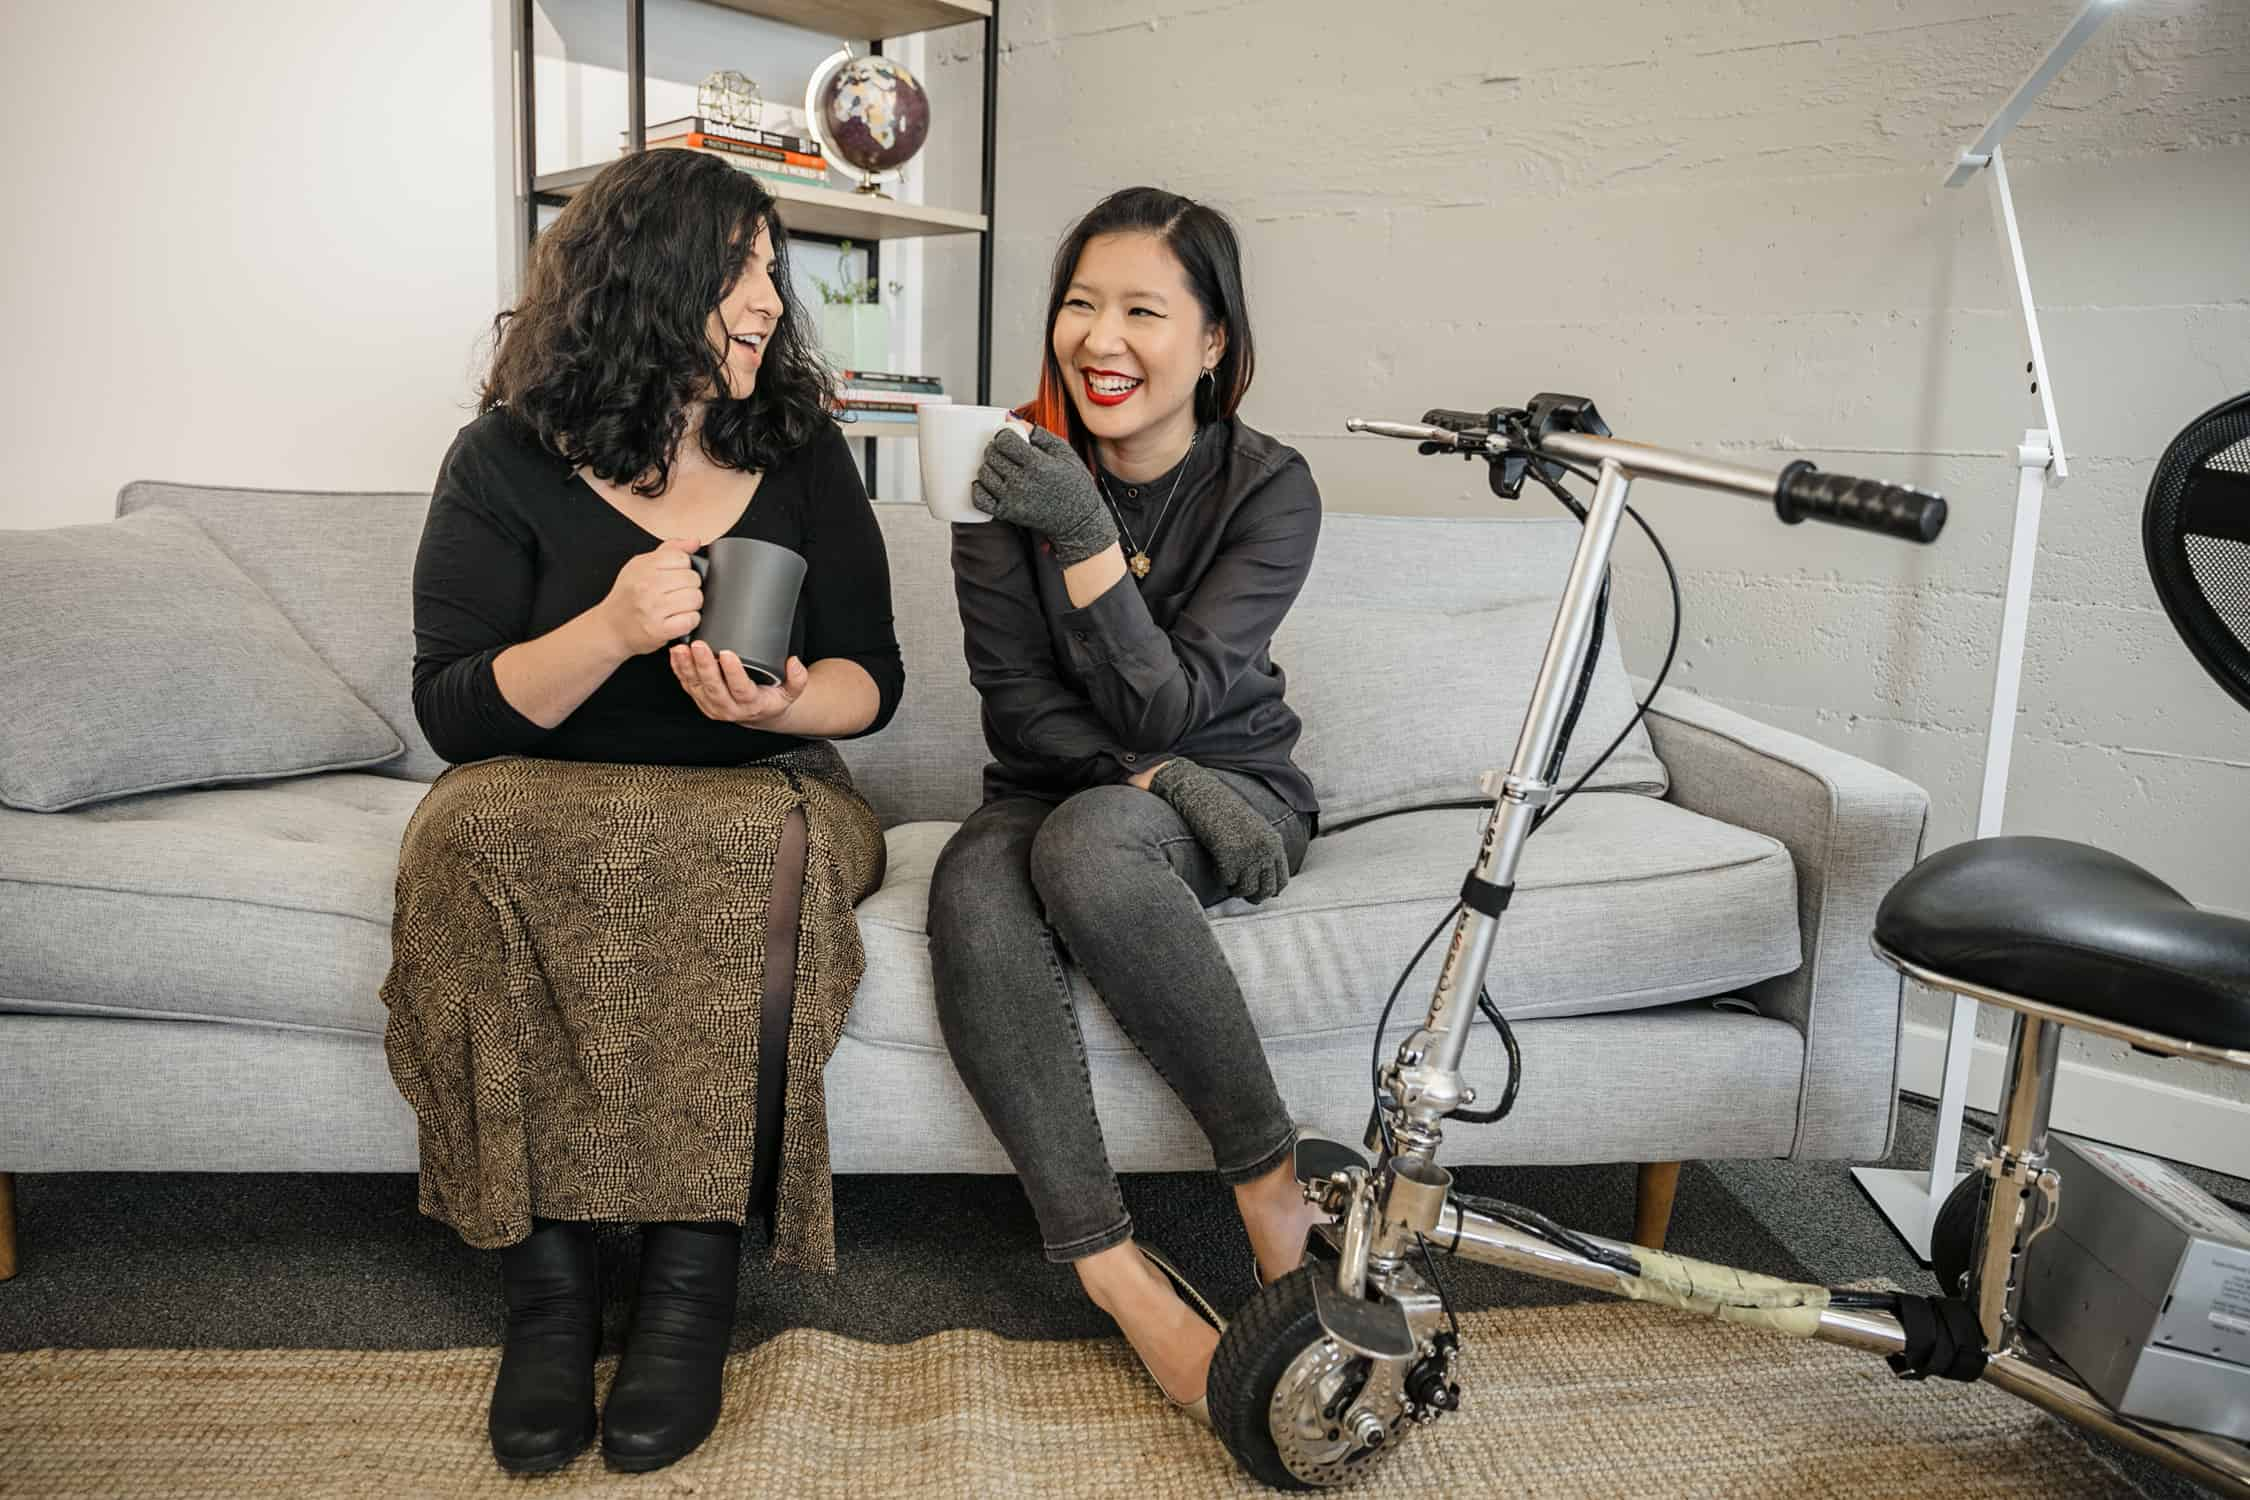 A Latinx disabled woman and an Asian disabled woman chat and sit on a couch, both holding coffee mugs. An electric lightweight mobility scooter rests on the side.